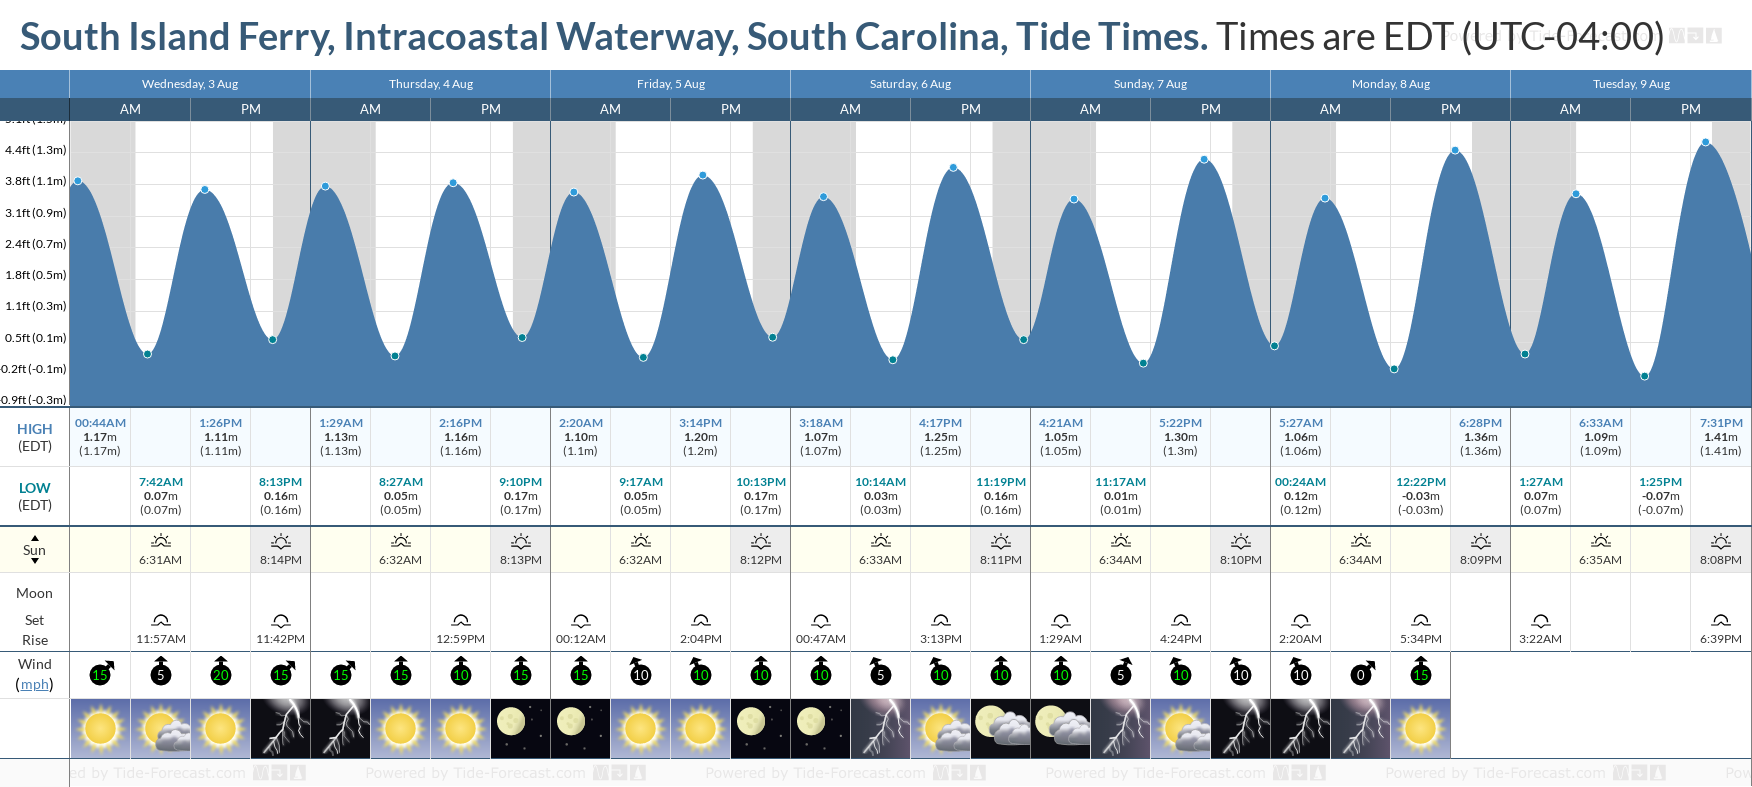 South Island Ferry, Intracoastal Waterway, South Carolina Tide Chart including high and low tide tide times for the next 7 days